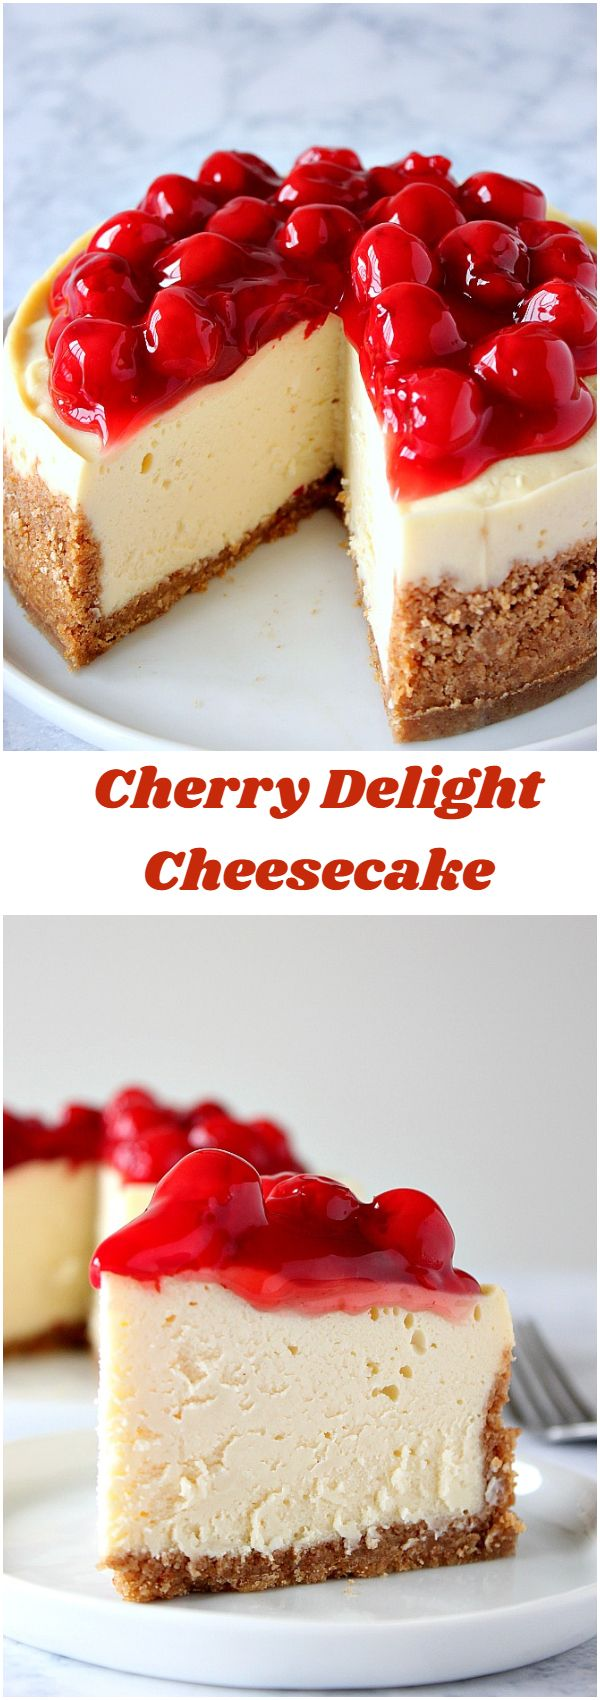 Instant Pot Cherry Delight Cheesecake Recipe